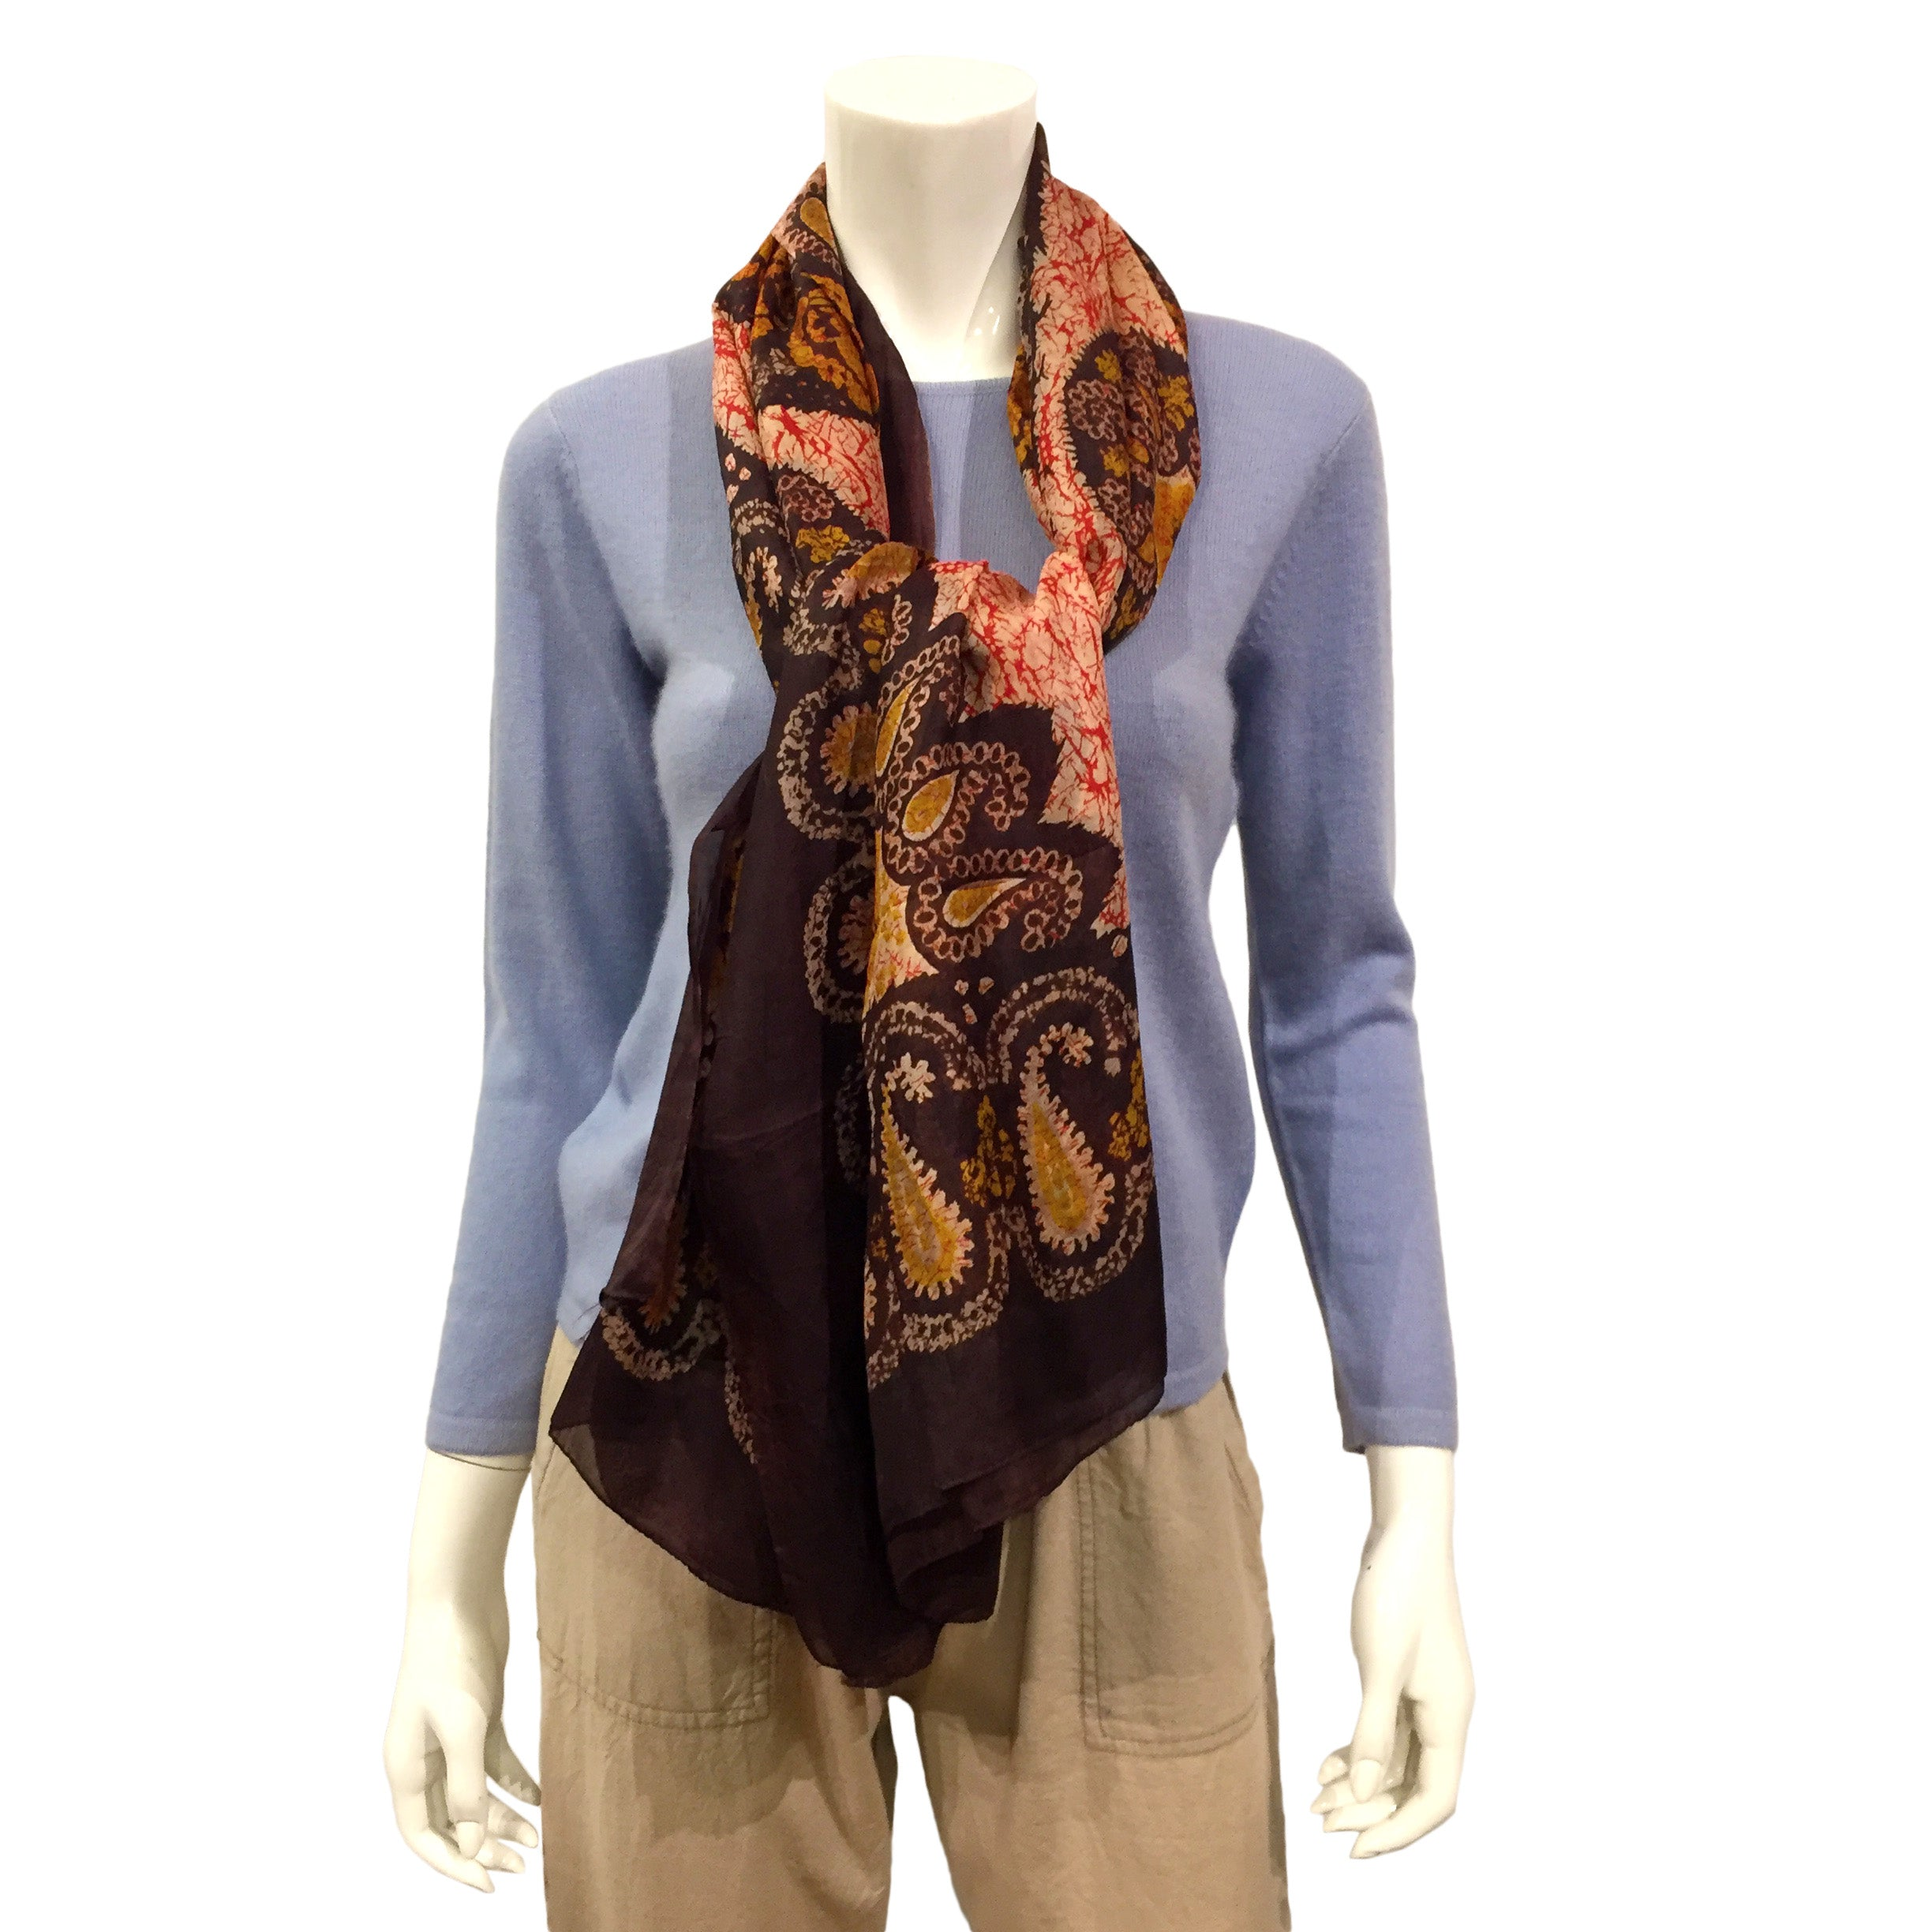 Silk Scarf with pattern